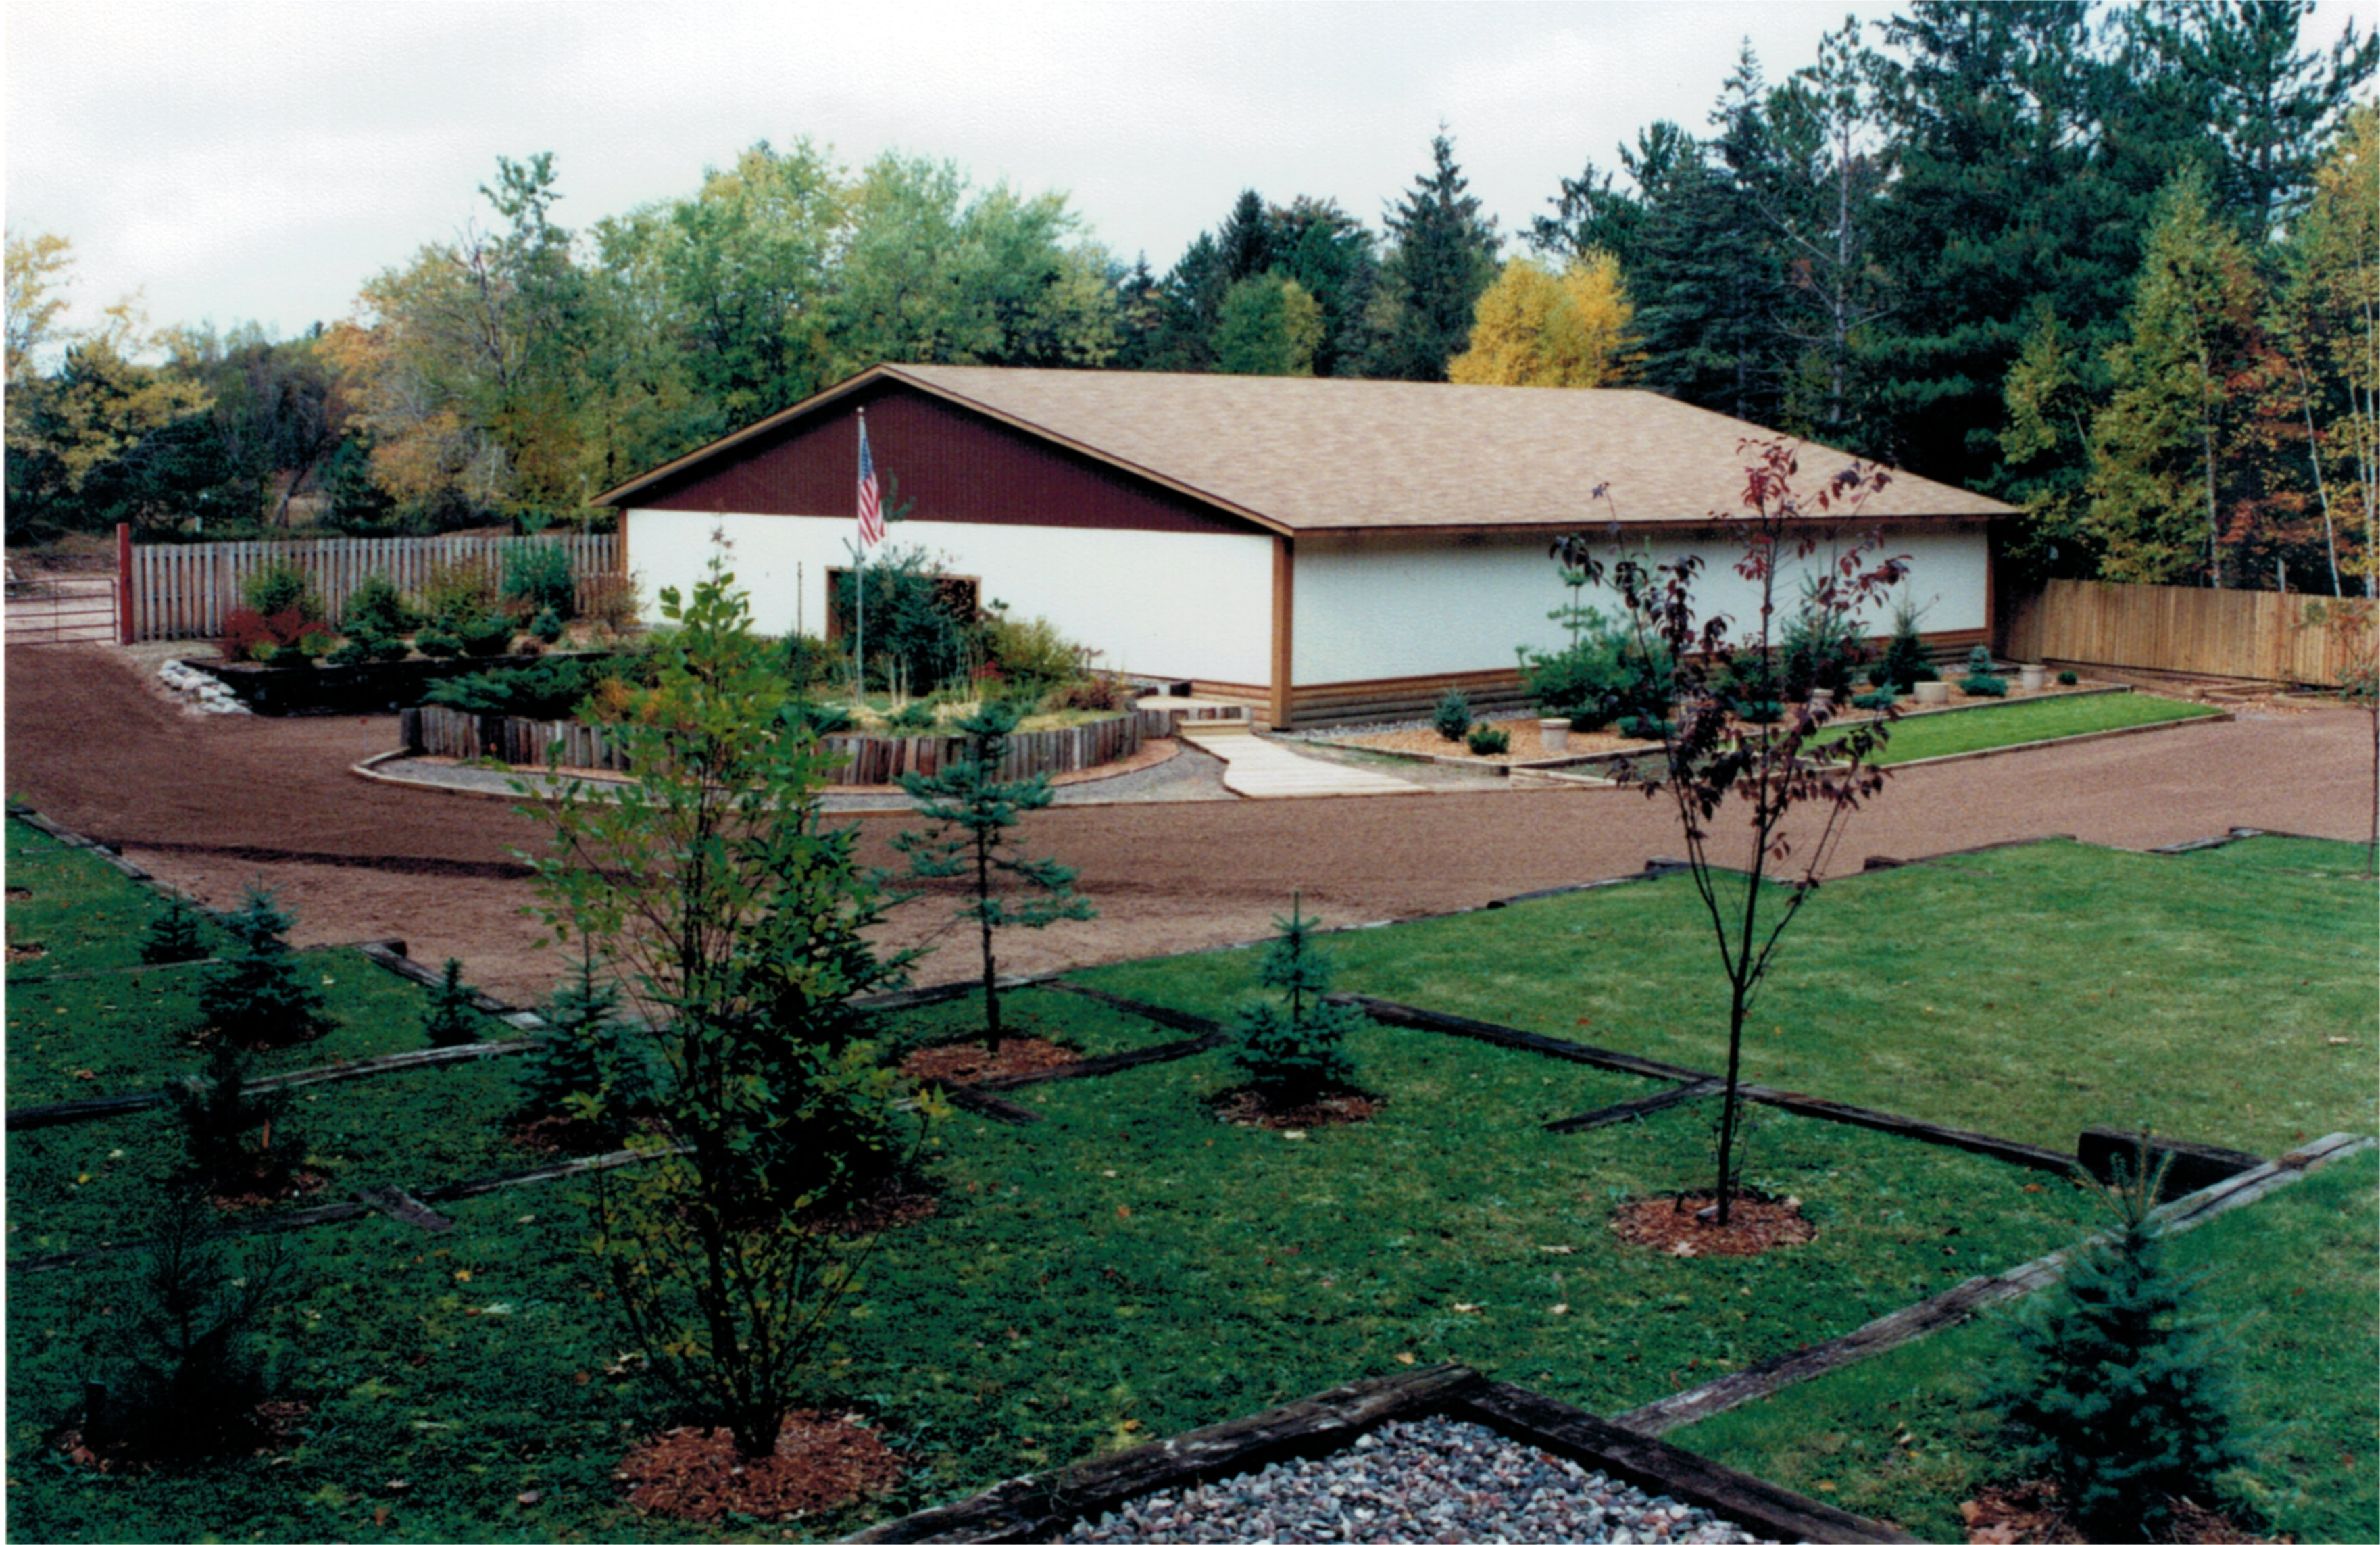 The Rec Building as it looked in the 1990's